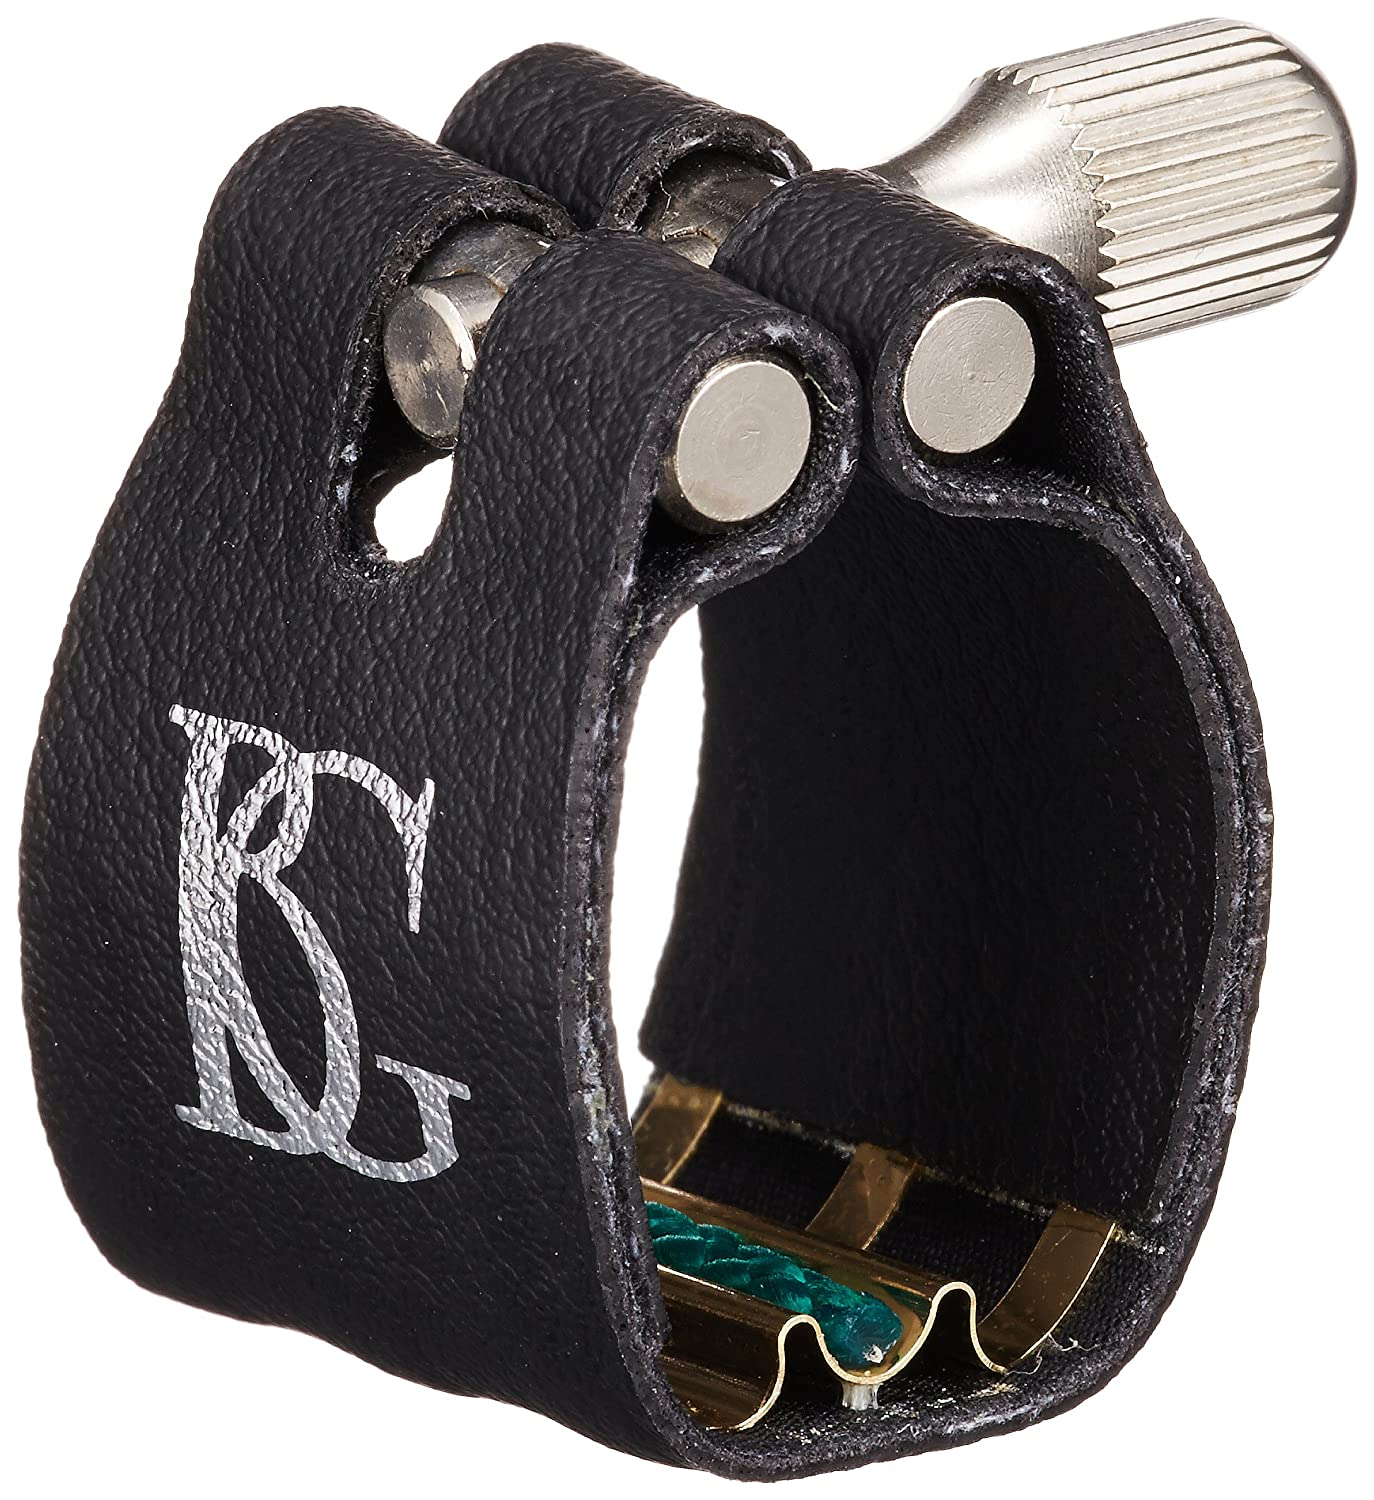 BG L4 SR Ligature with Cap, Bb Clarinet, Super Rev, Gold